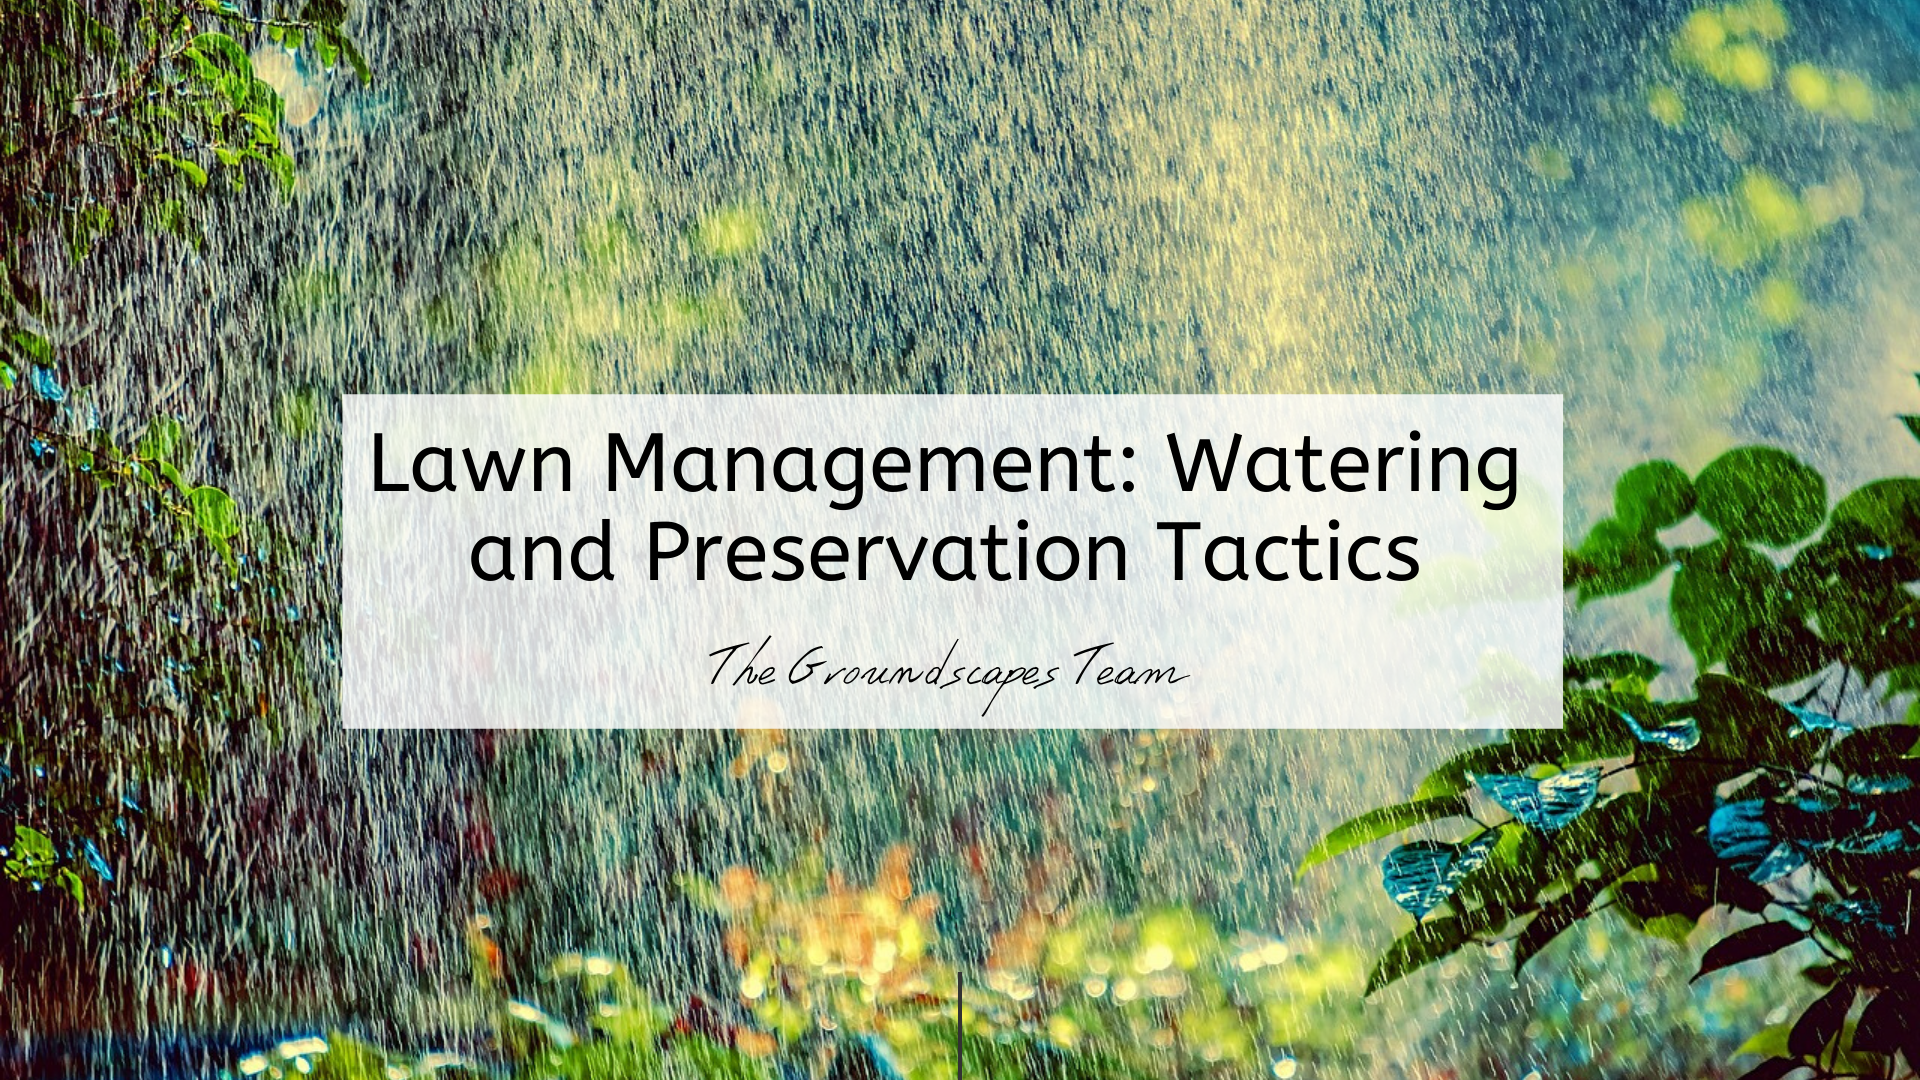 Basic Lawn Management: Watering and Preservation Tactics